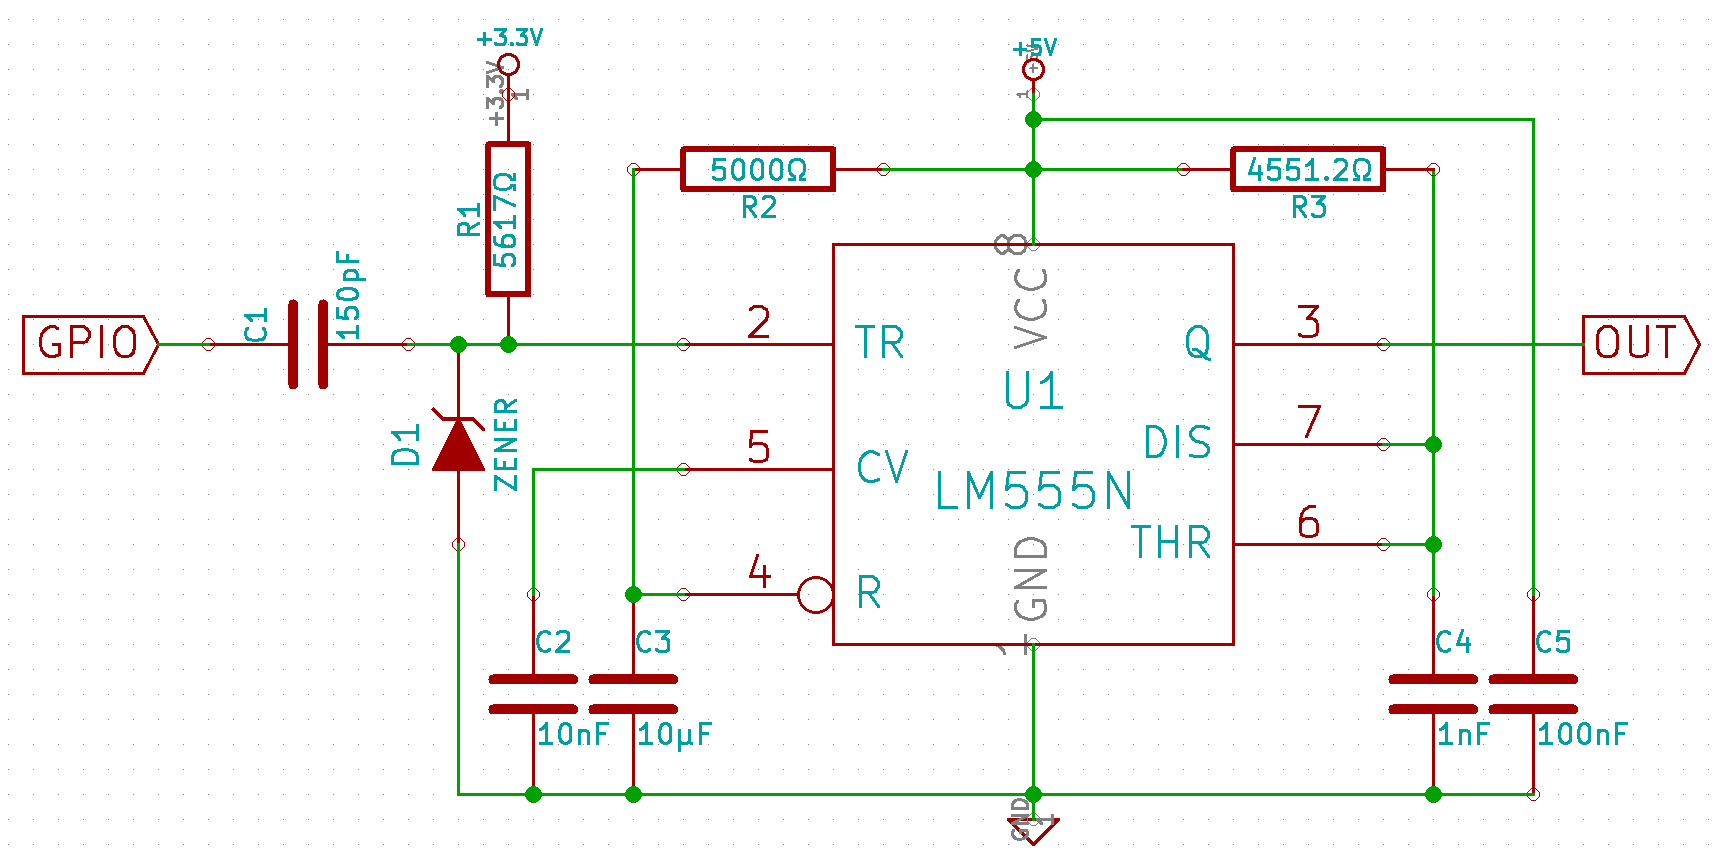 Prepare For Raspberry Pi Interaction Details Circuit Diagram Of Zener Diode D1 Is A 36v Protecting Against Overvoltage The Datasheet Tells That Trigger Pin 555 Gives Max 2a At 0v